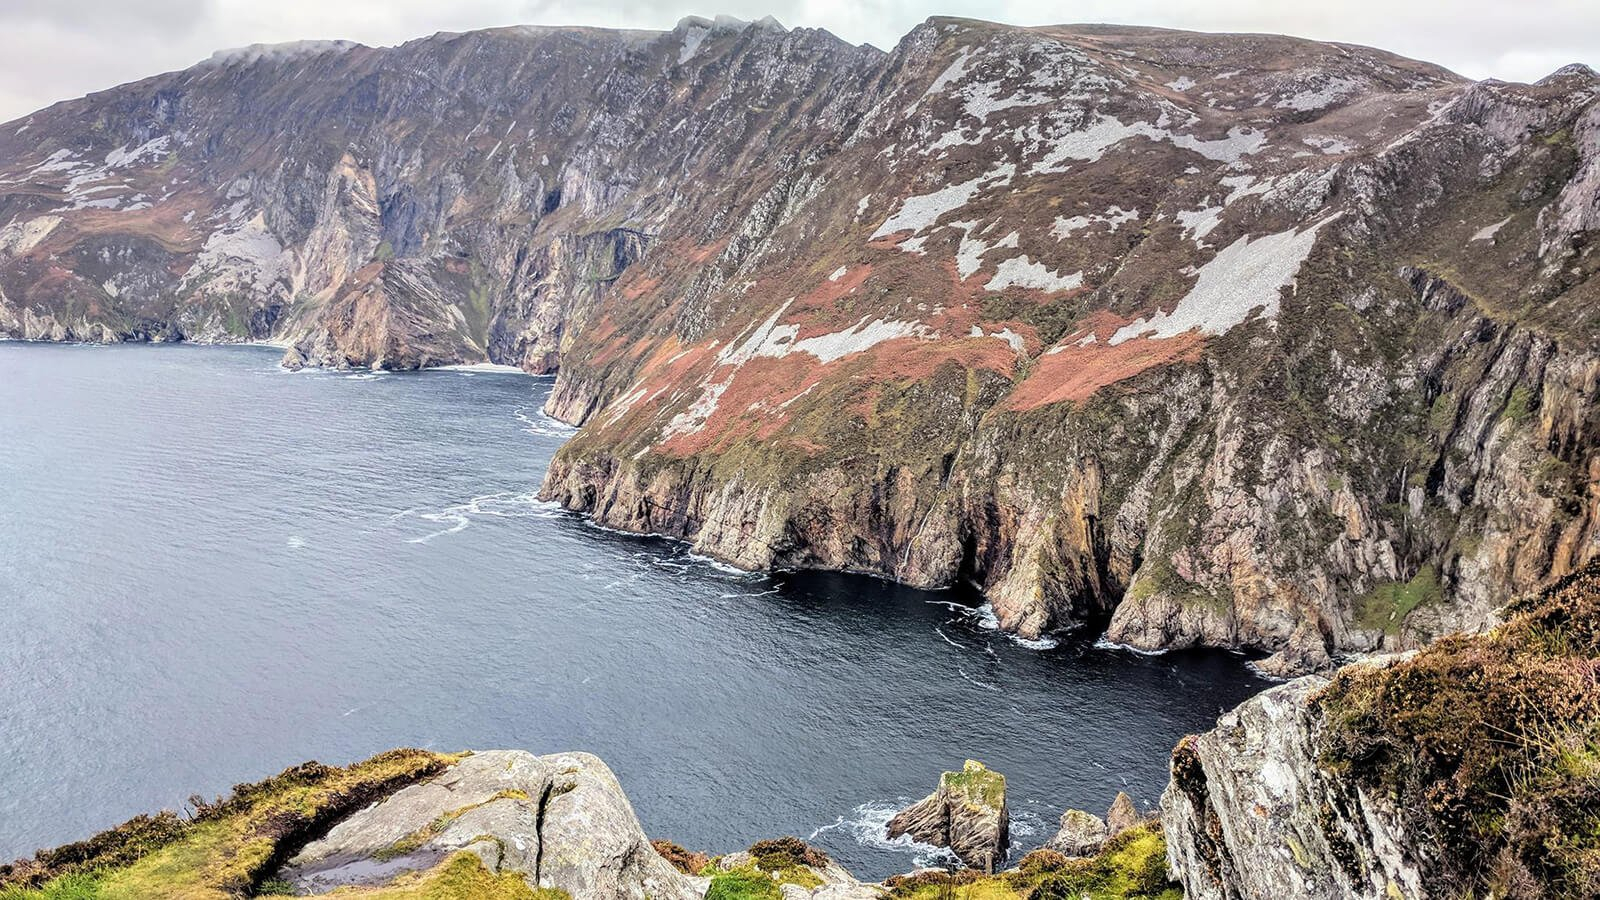 Vagabond guest Larry Murr snapped this amazing photo of the Slieve League sea cliffs in Ireland